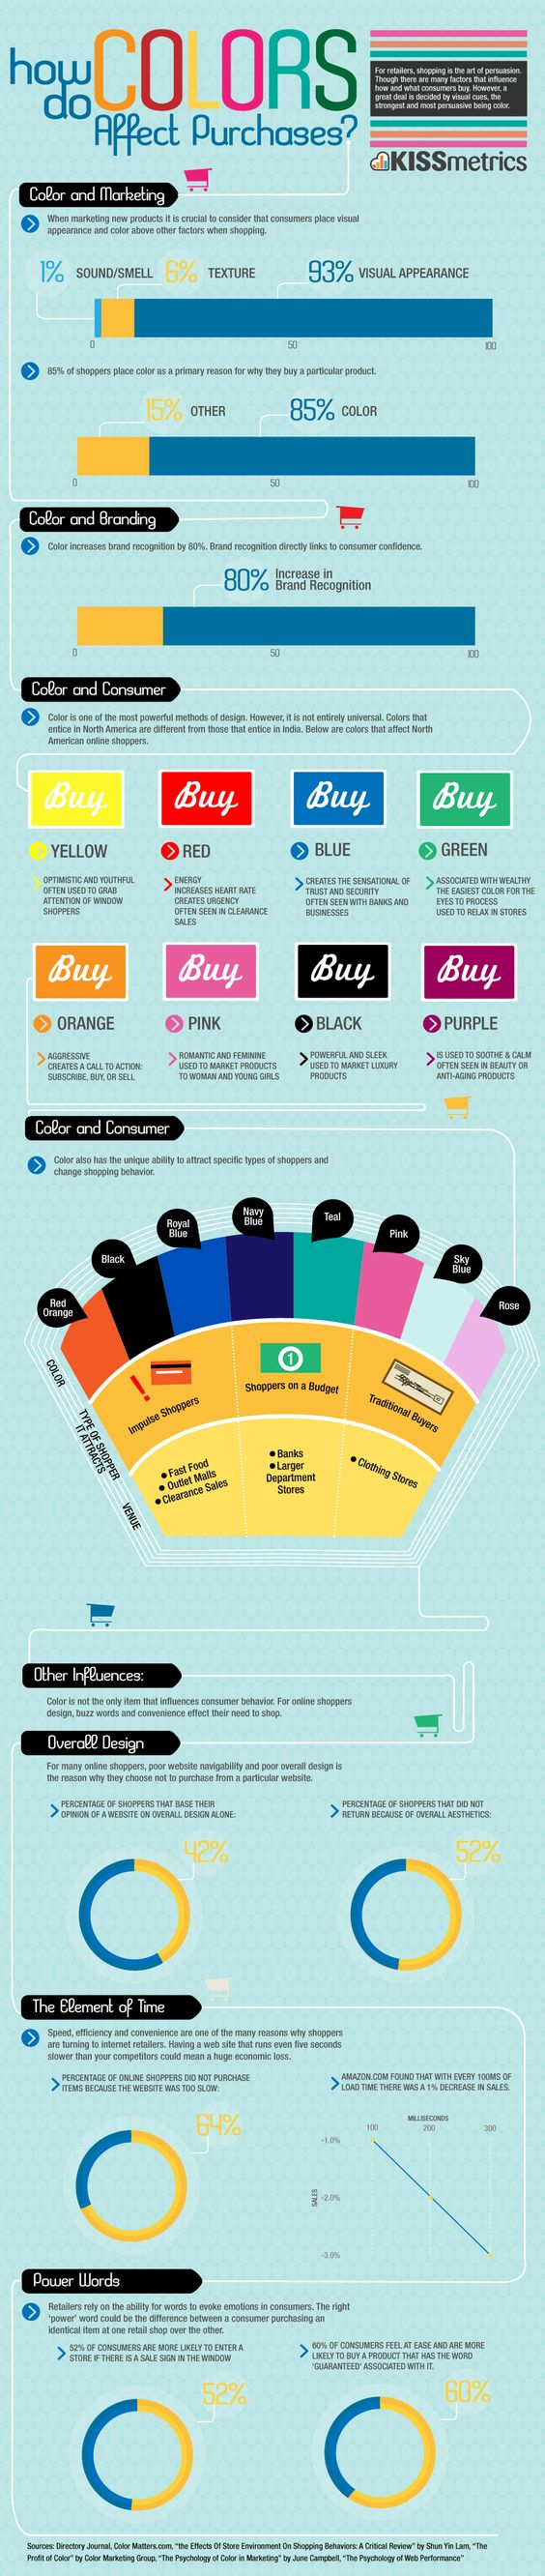 infographic from kissmetrics